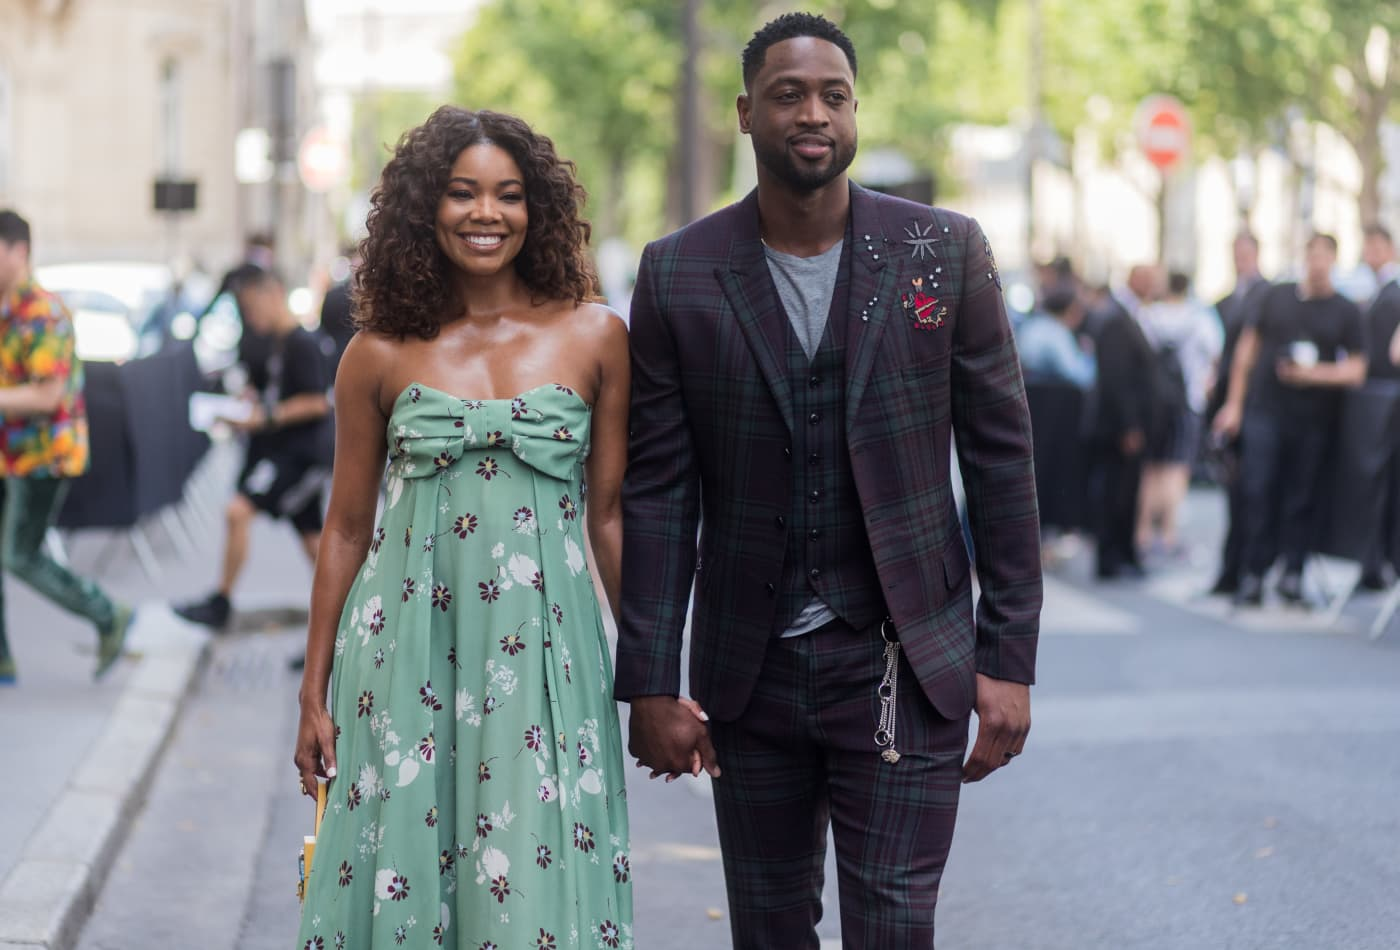 Dwyane Wade on marriage to Gabrielle Union: She has her own bank account and 'doesn't stop my growth'